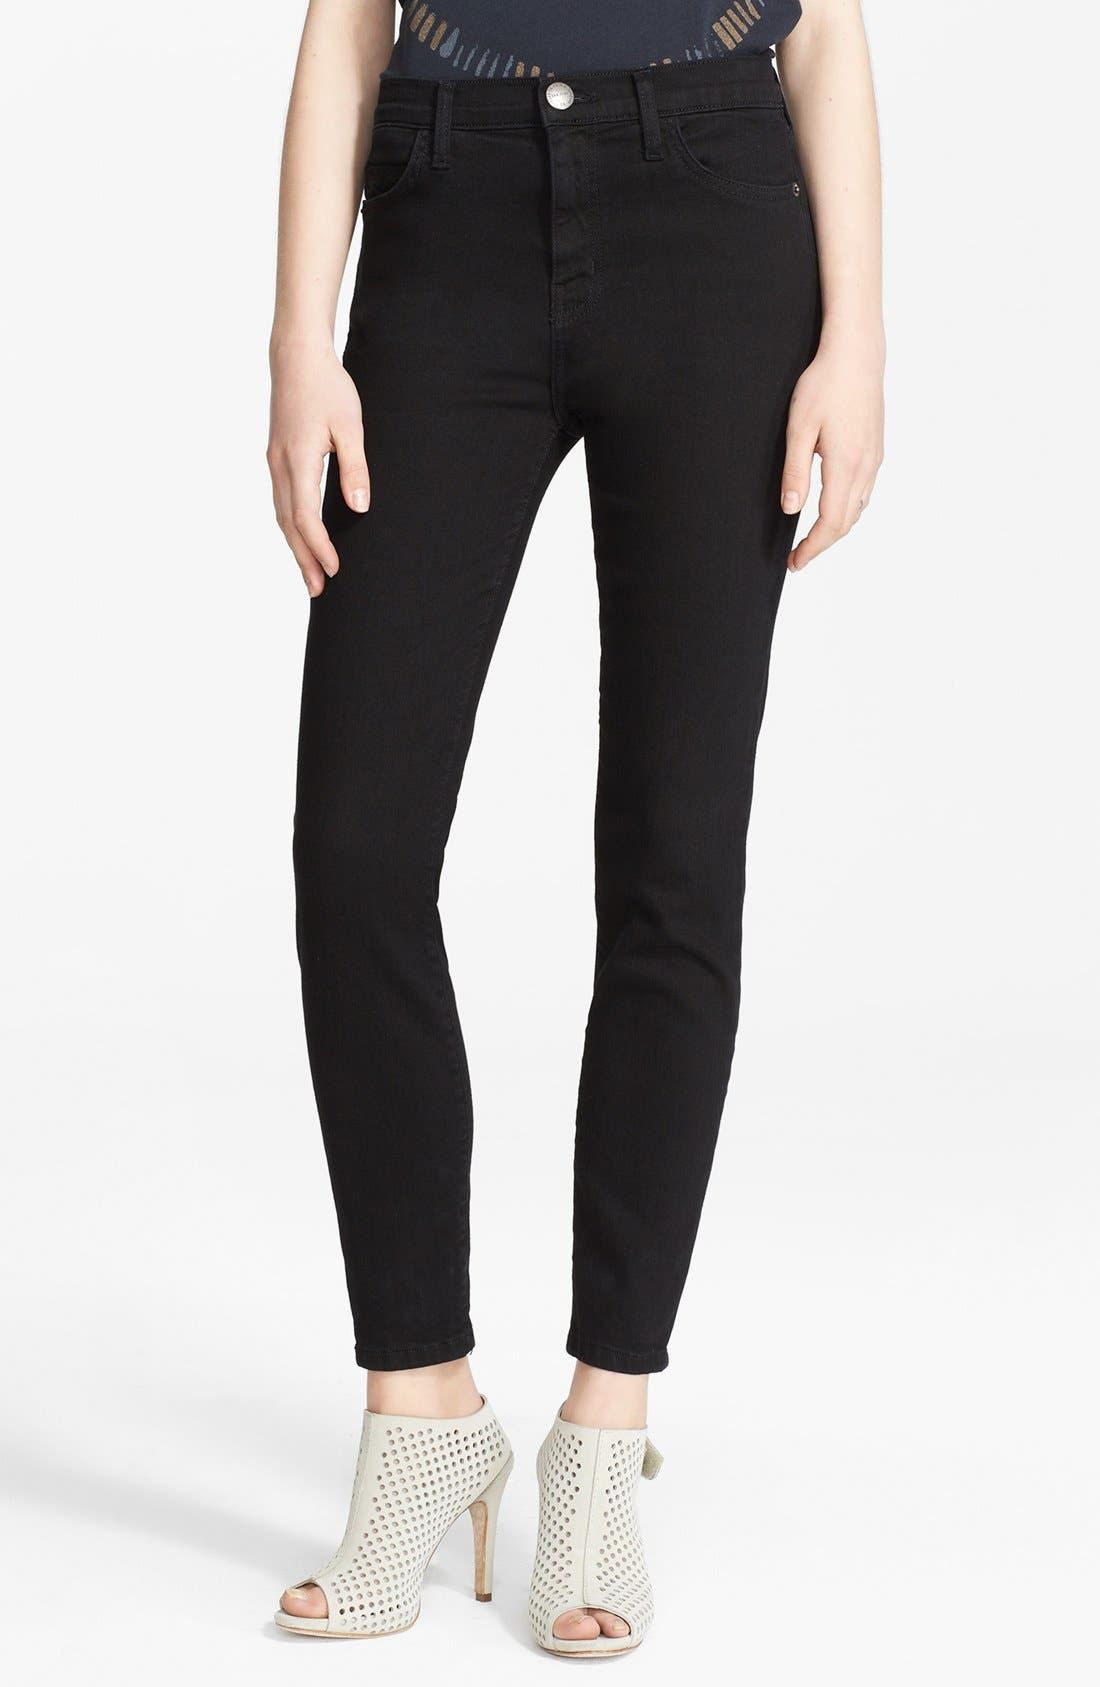 Main Image - Current/Elliott The Stiletto Skinny Jeans